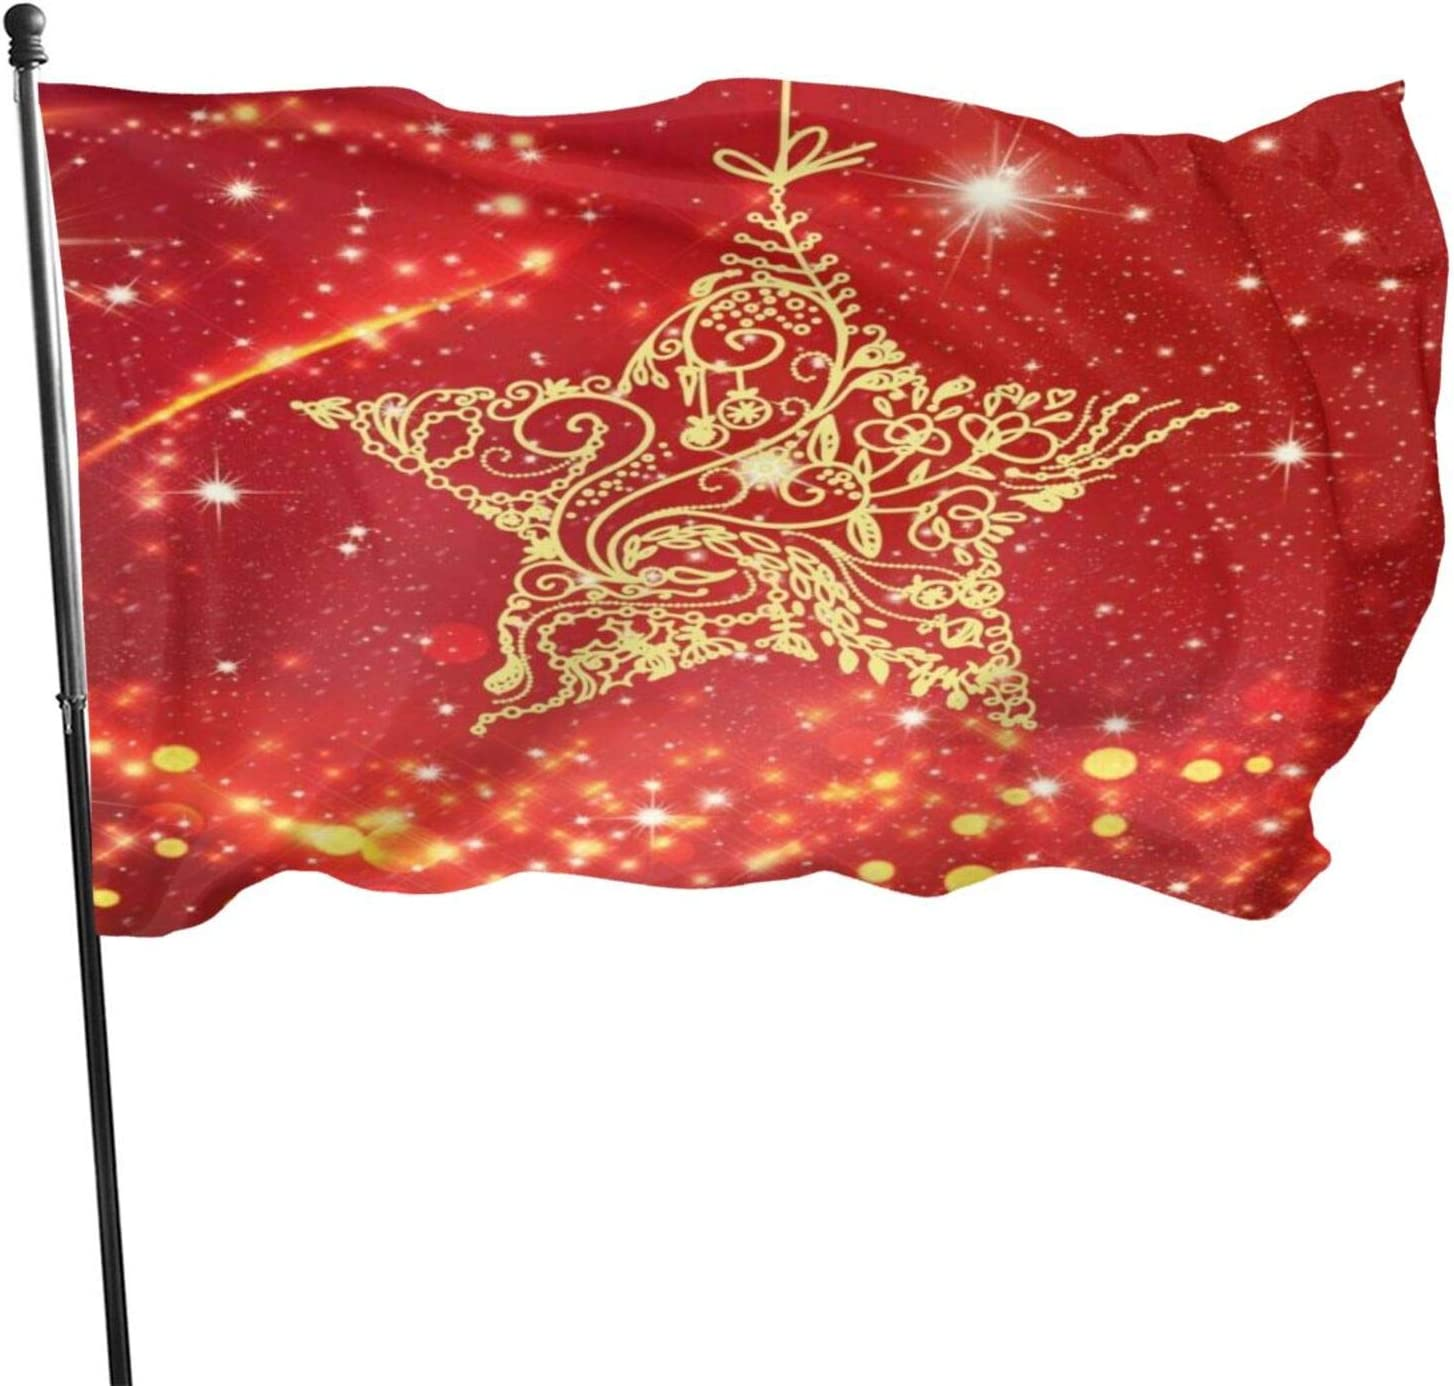 red Star Abstract Beautiful Christmas Home Garden Flag Polyester Flag Indoor/Outdoor Wall Banners Decorative Flag 3x5 Foot